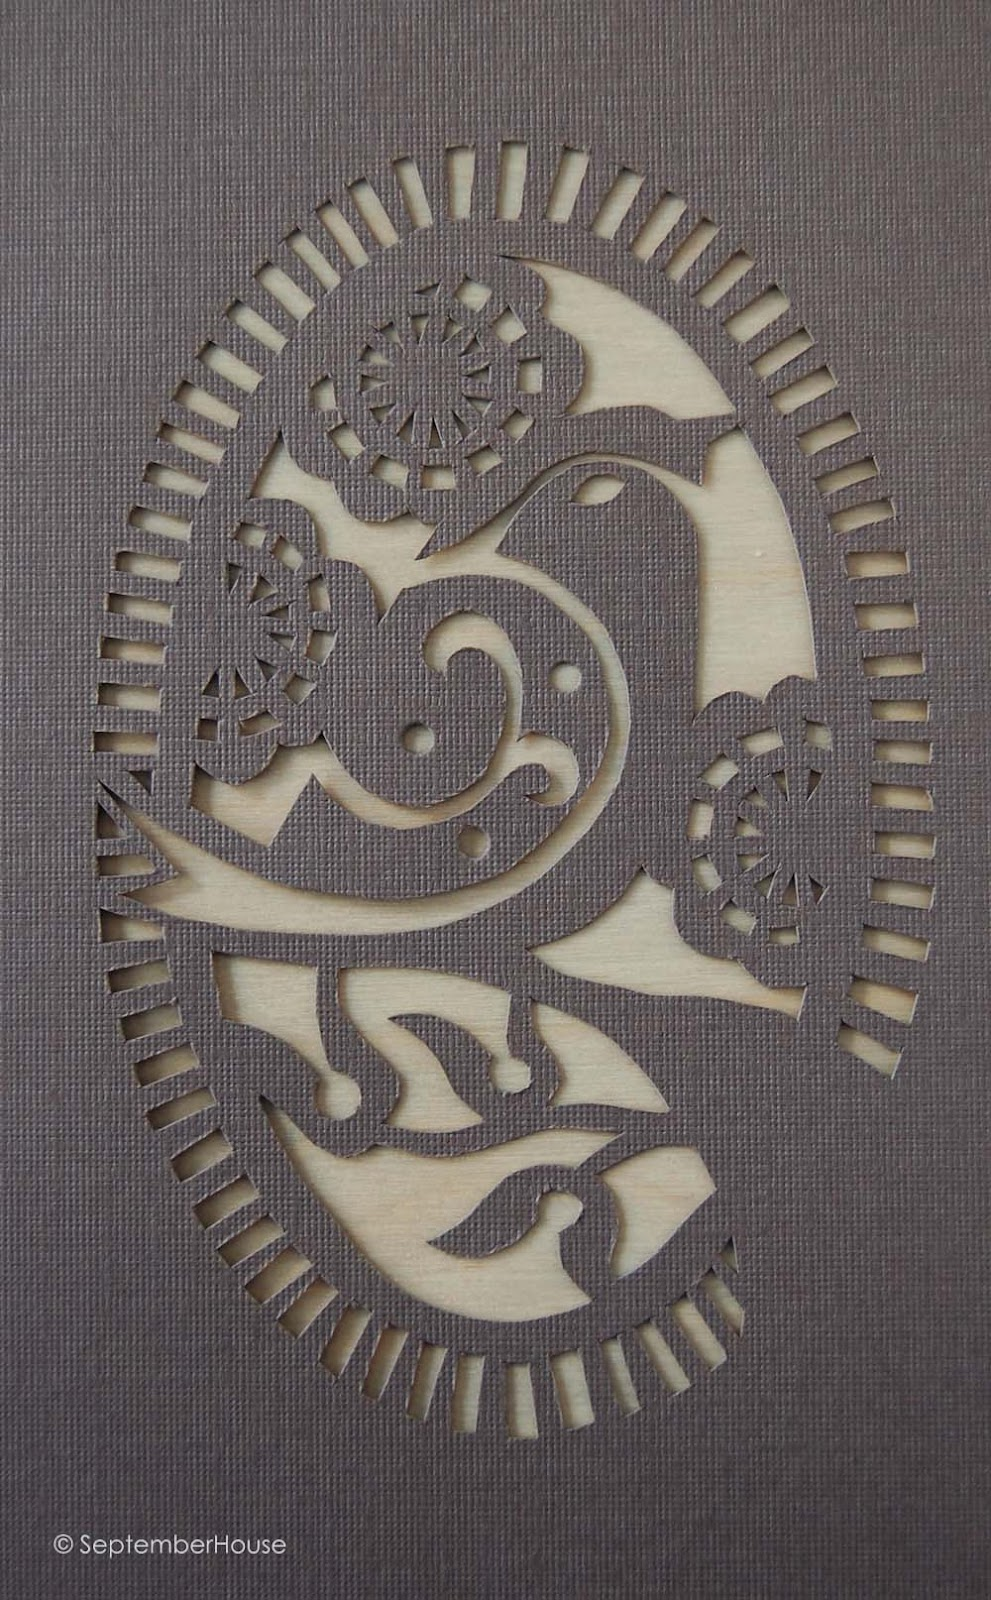 Bird Design papercutting